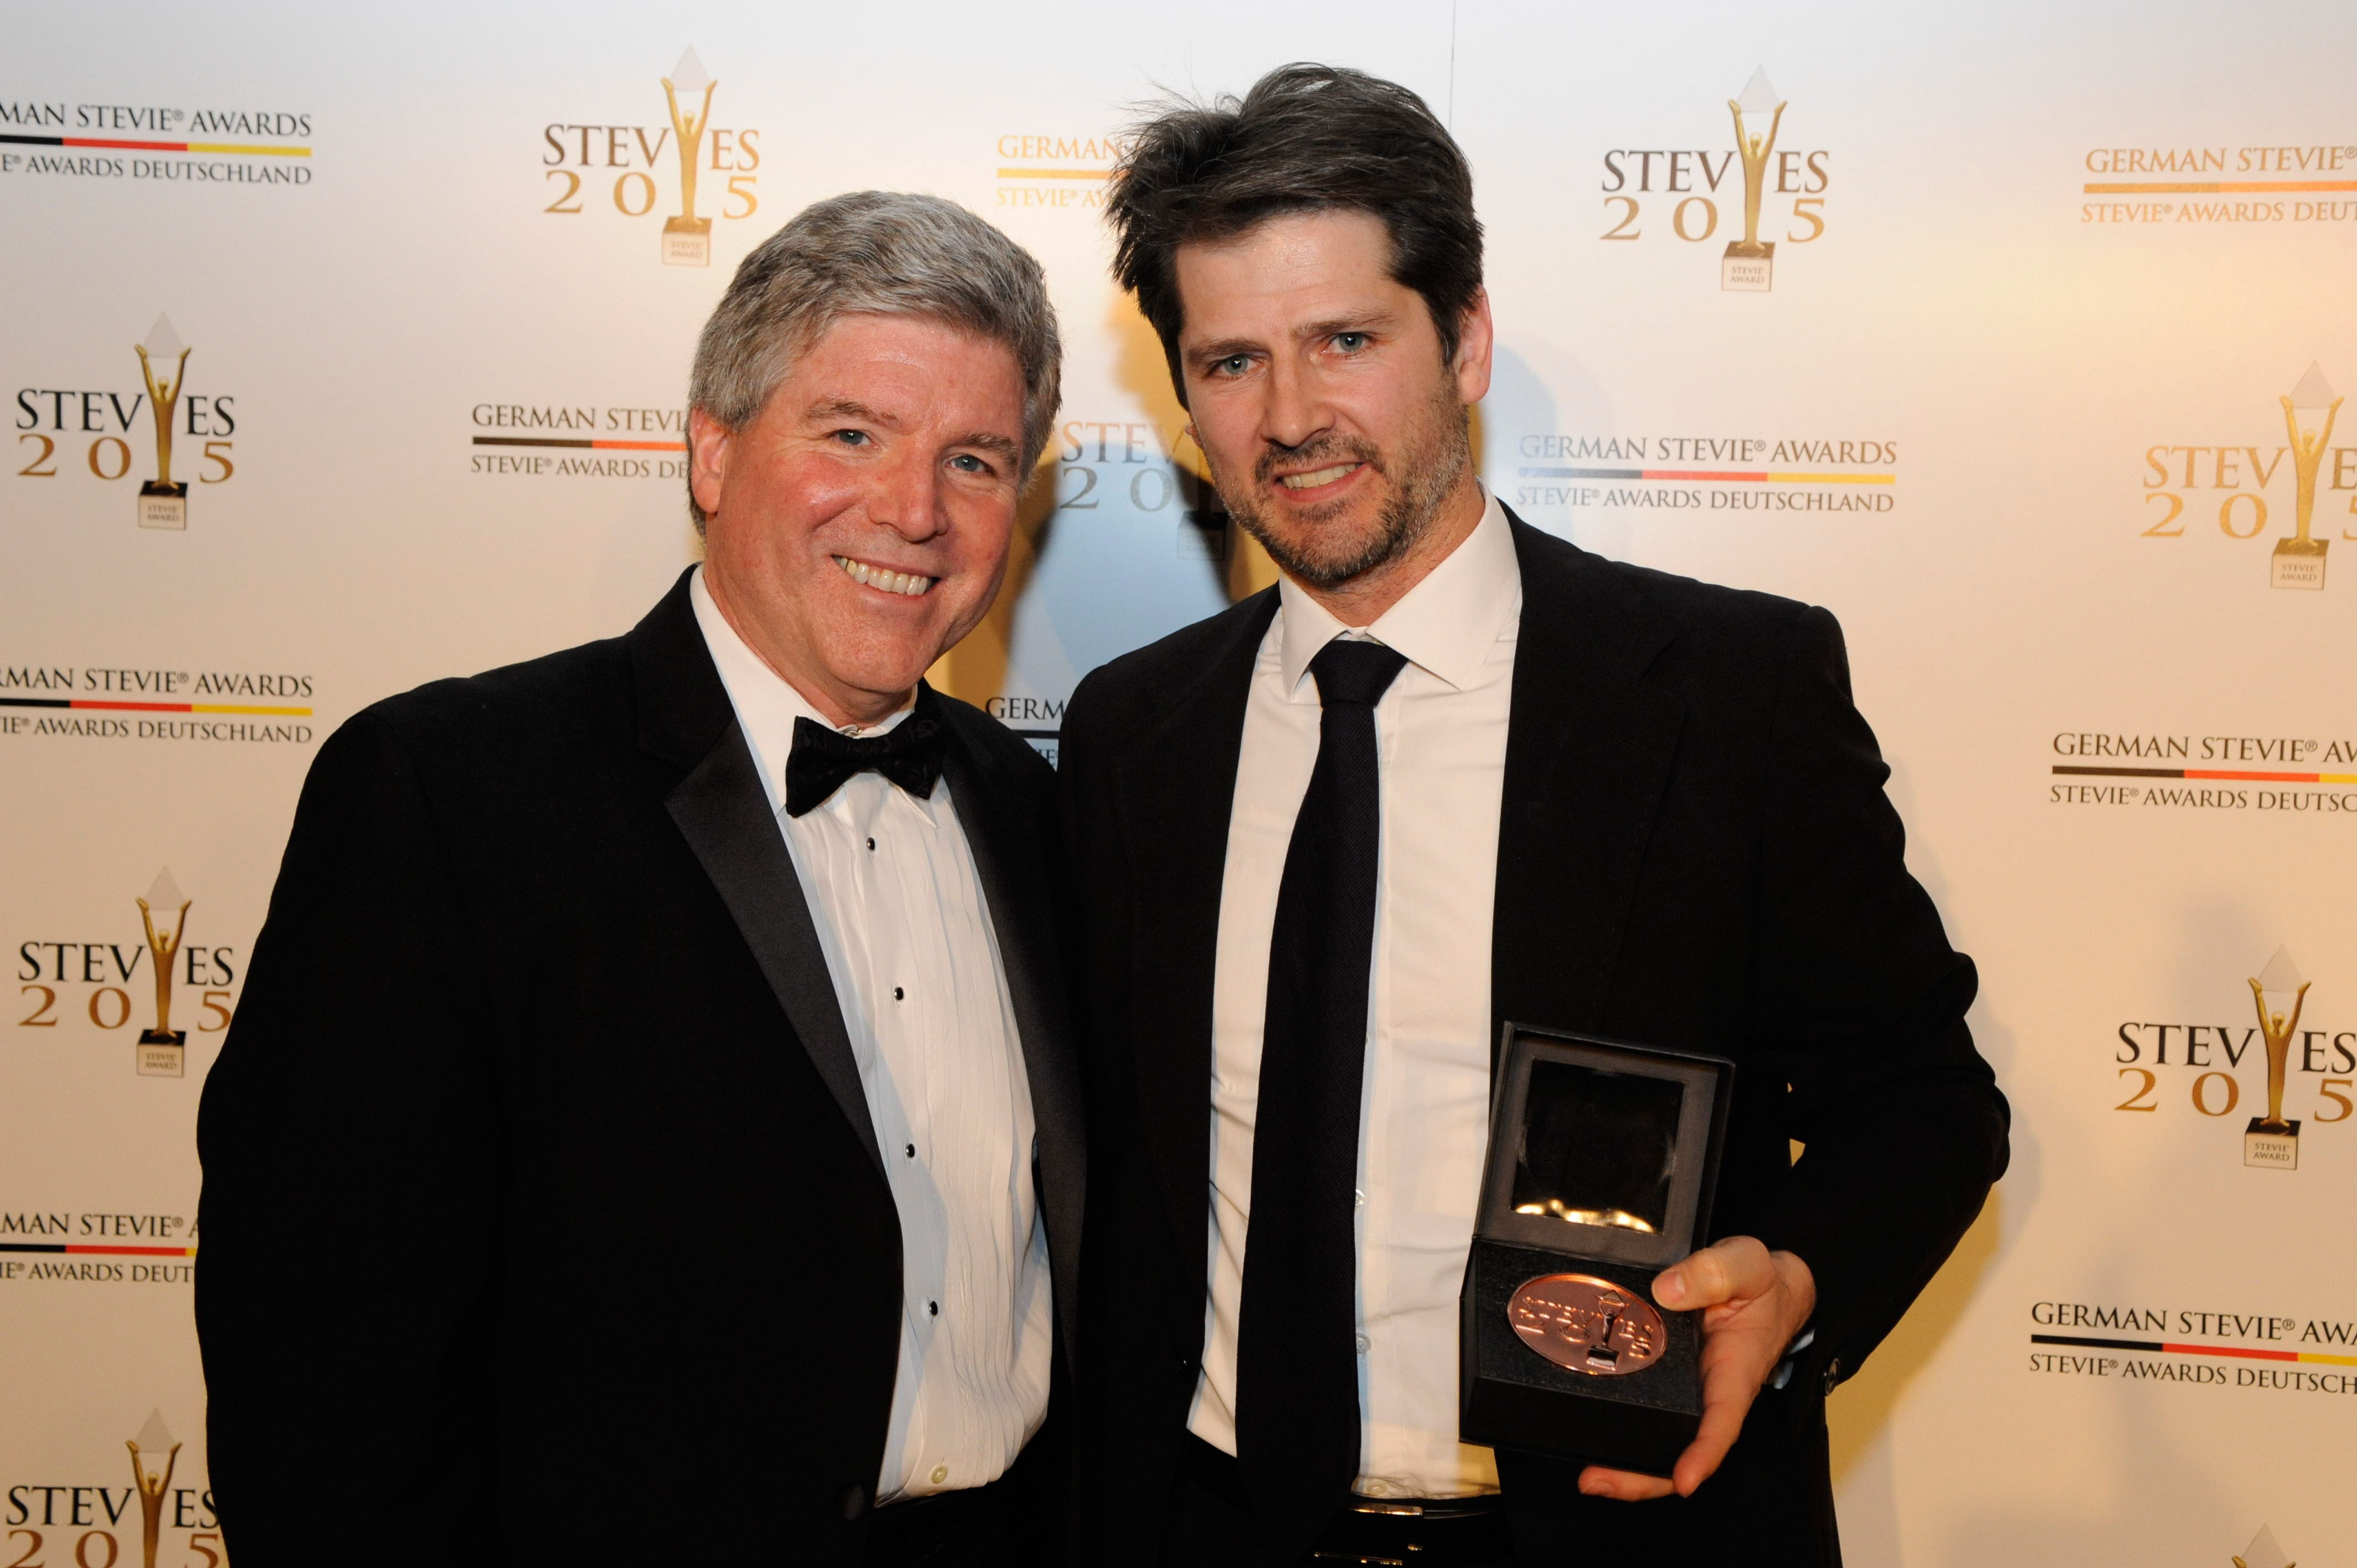 Inventorum gewinnt bei den 1. German Stevie Awards